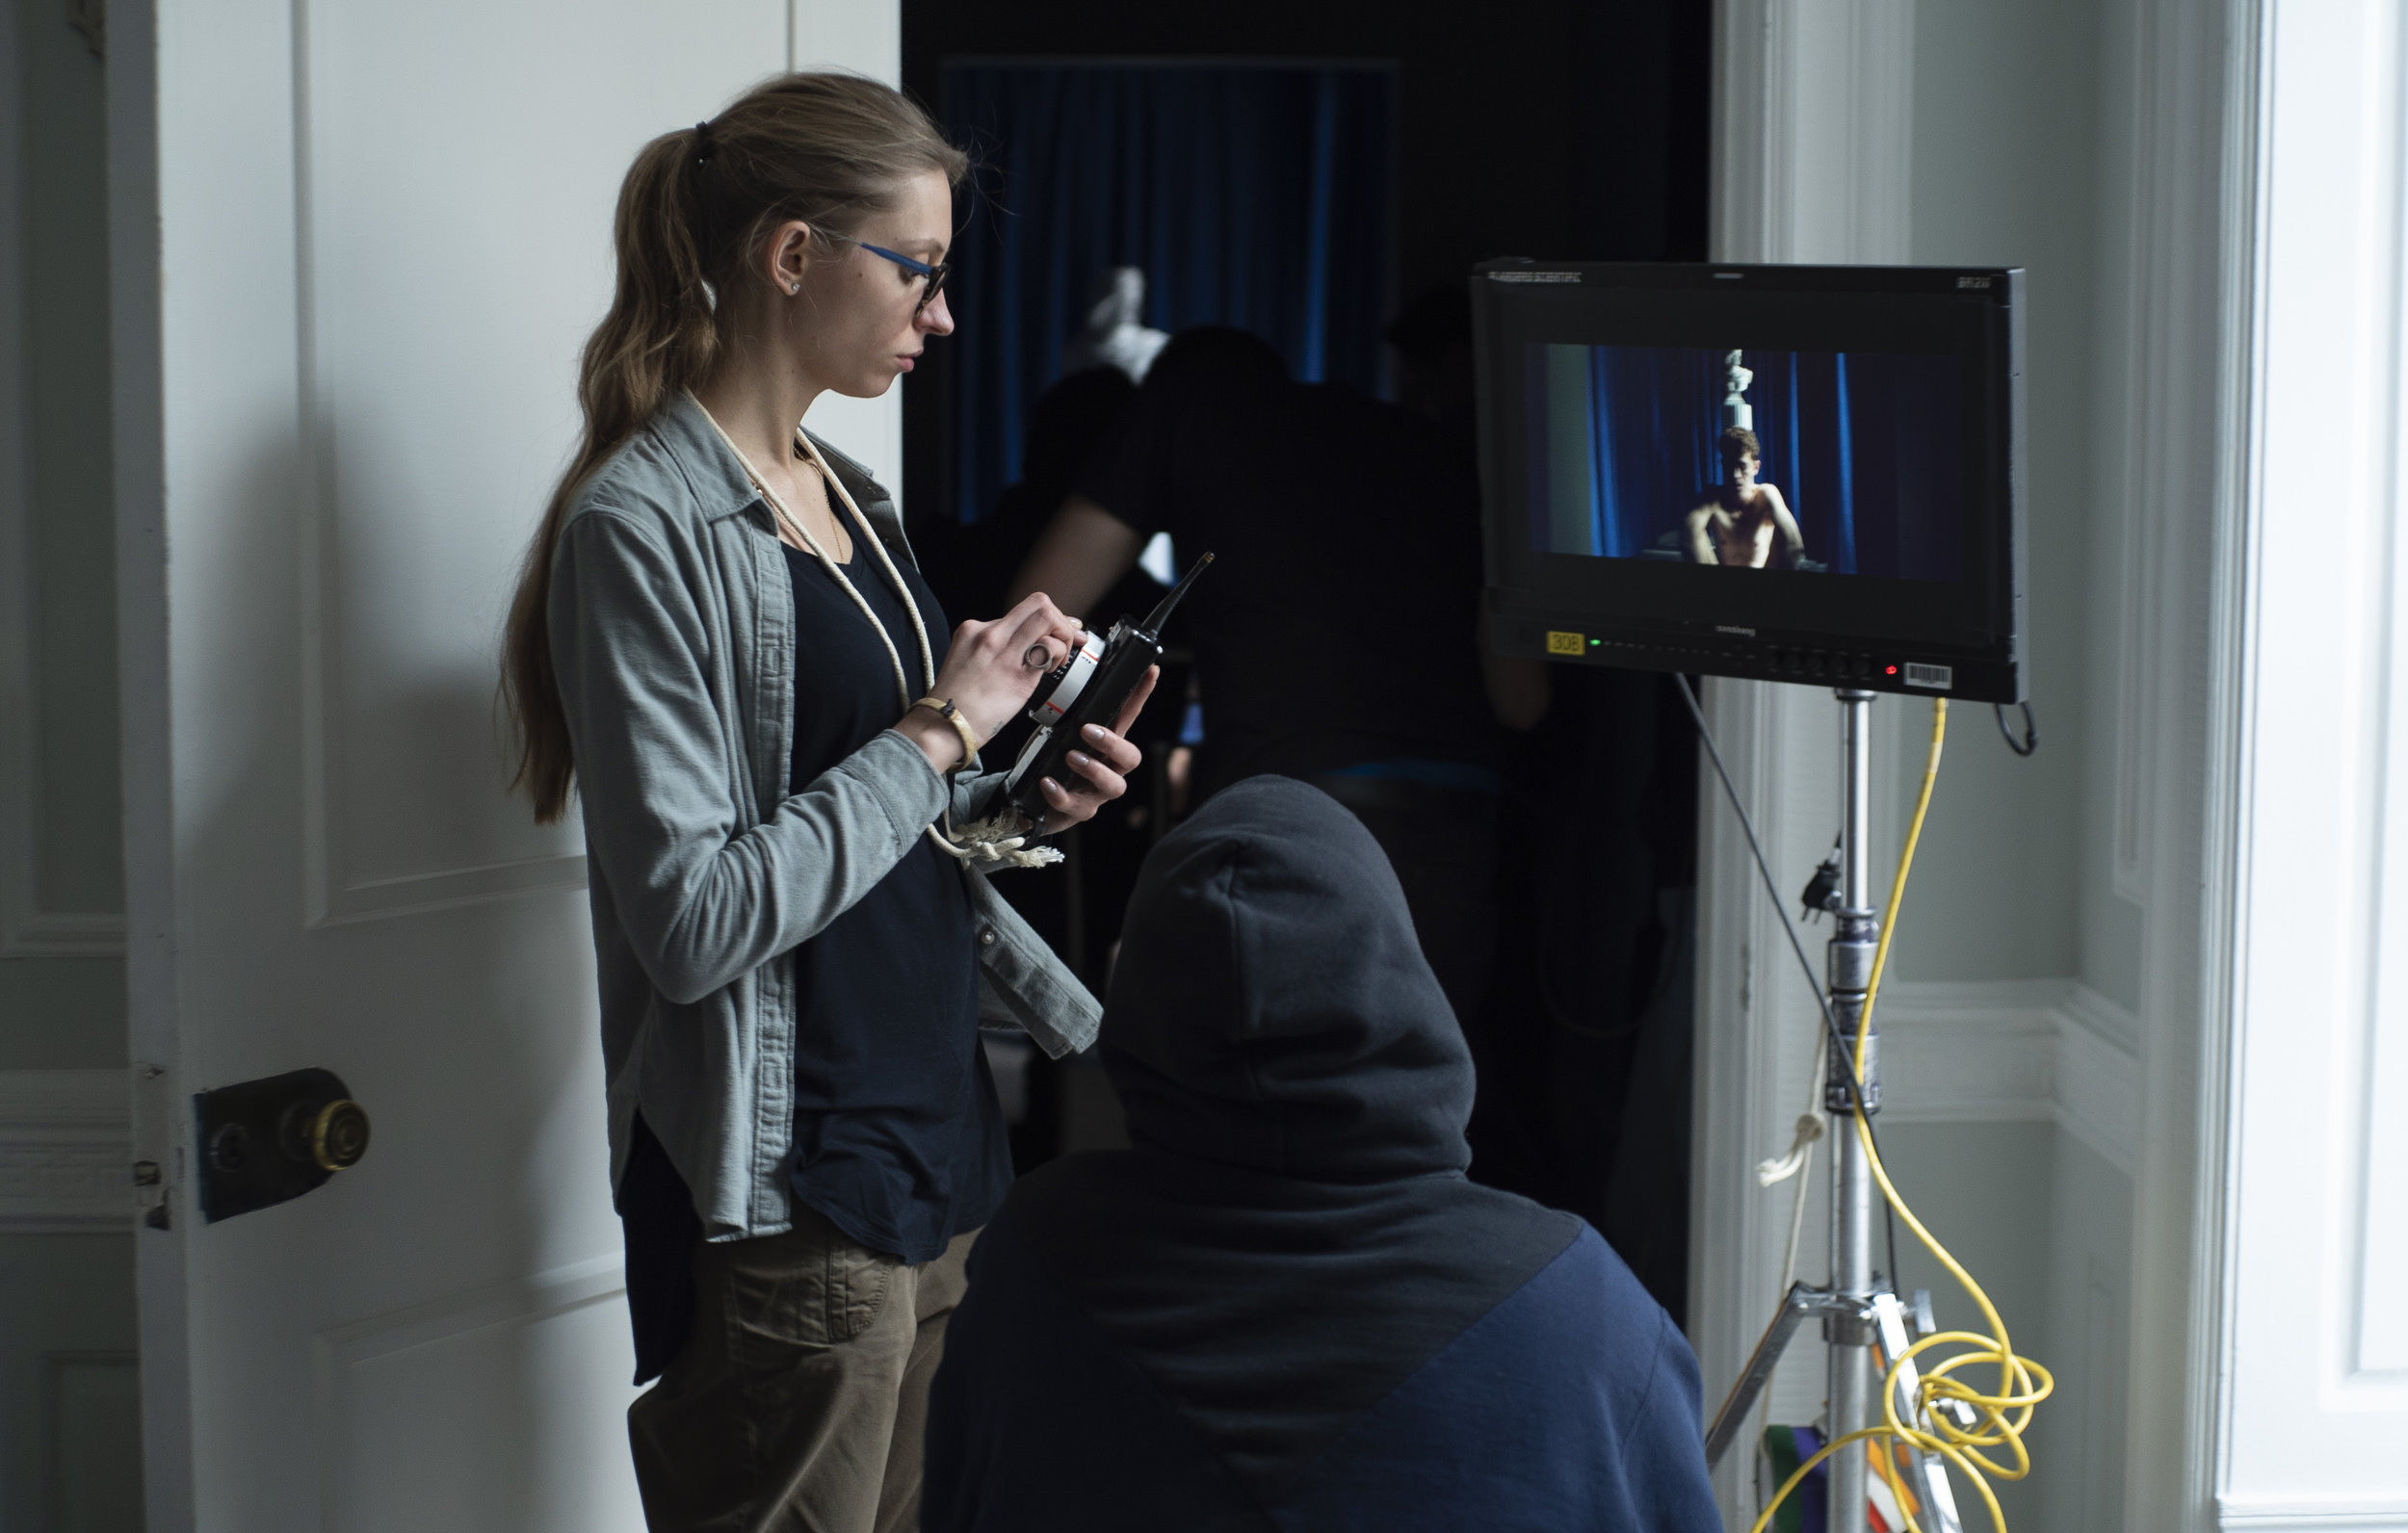 First Assistant Camera, Asia Khmelova, working on Joseph Longo's set in USA